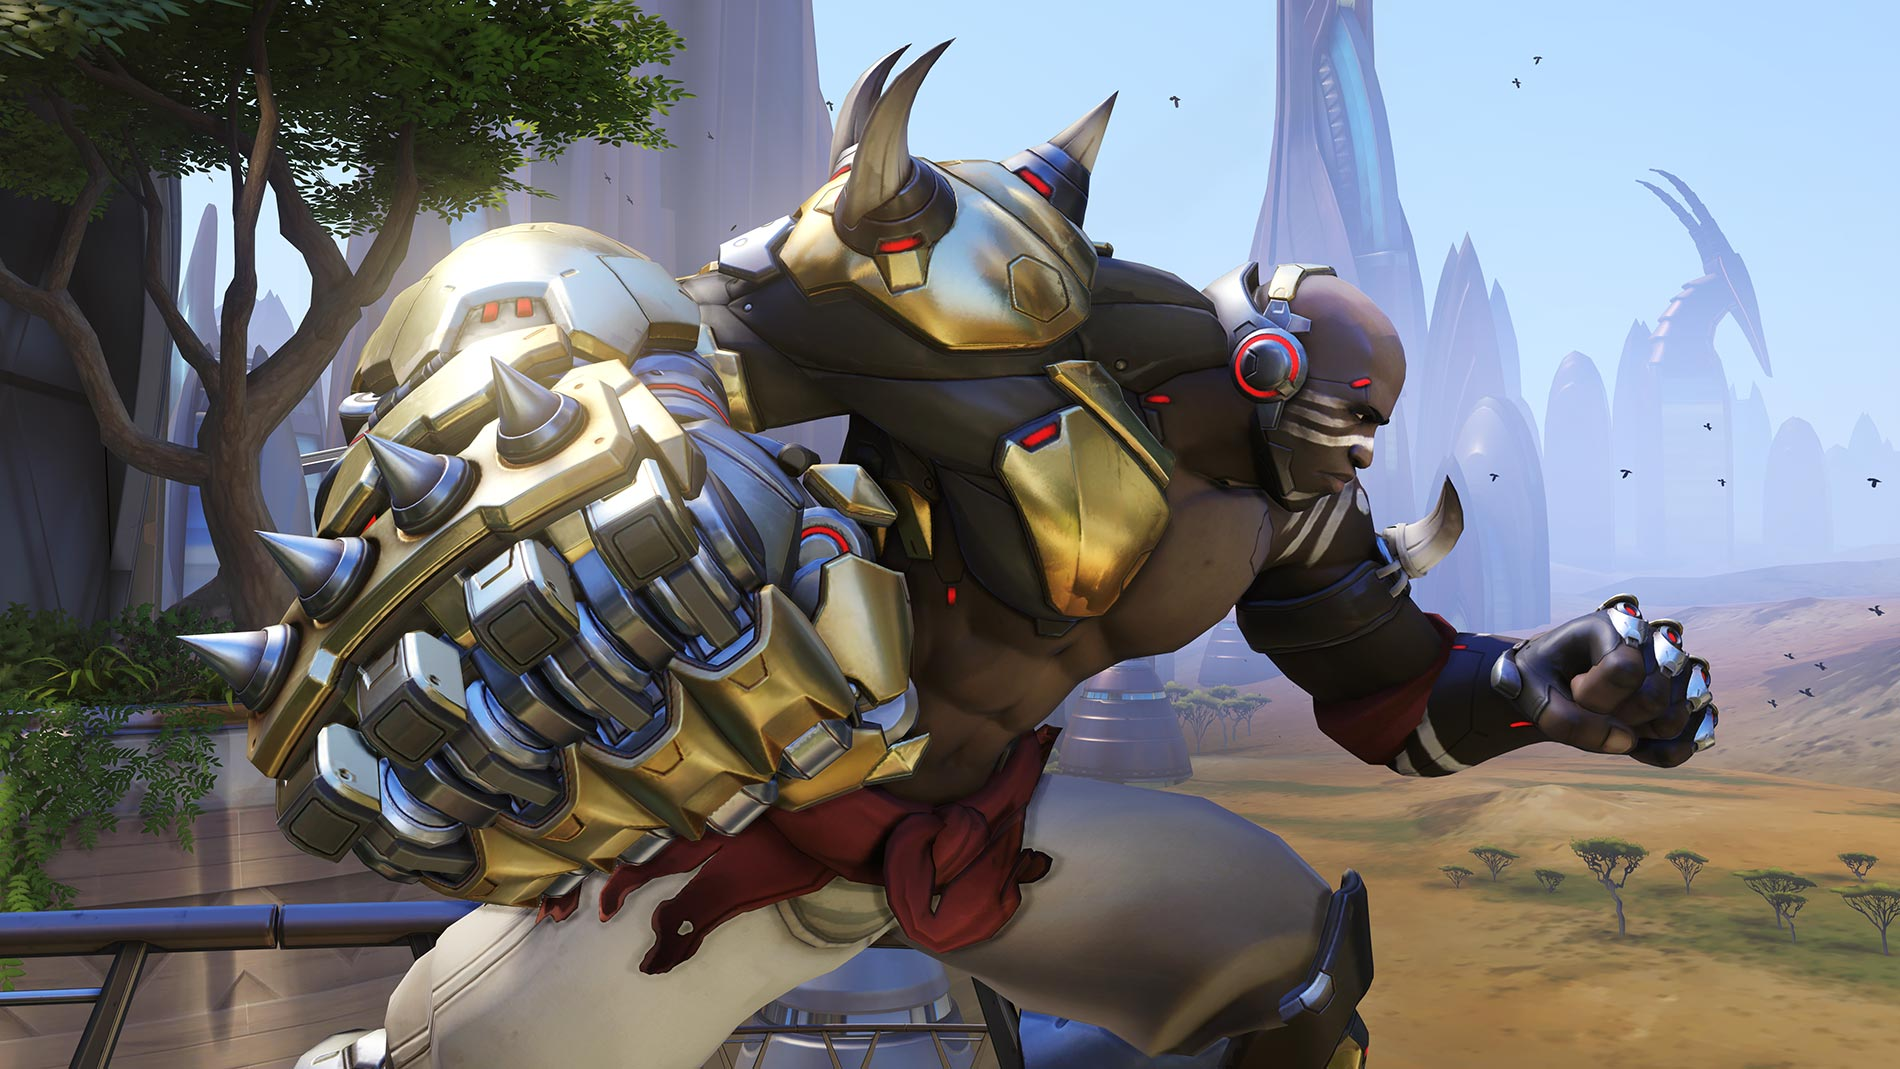 doomfist-screenshot-002.jpg